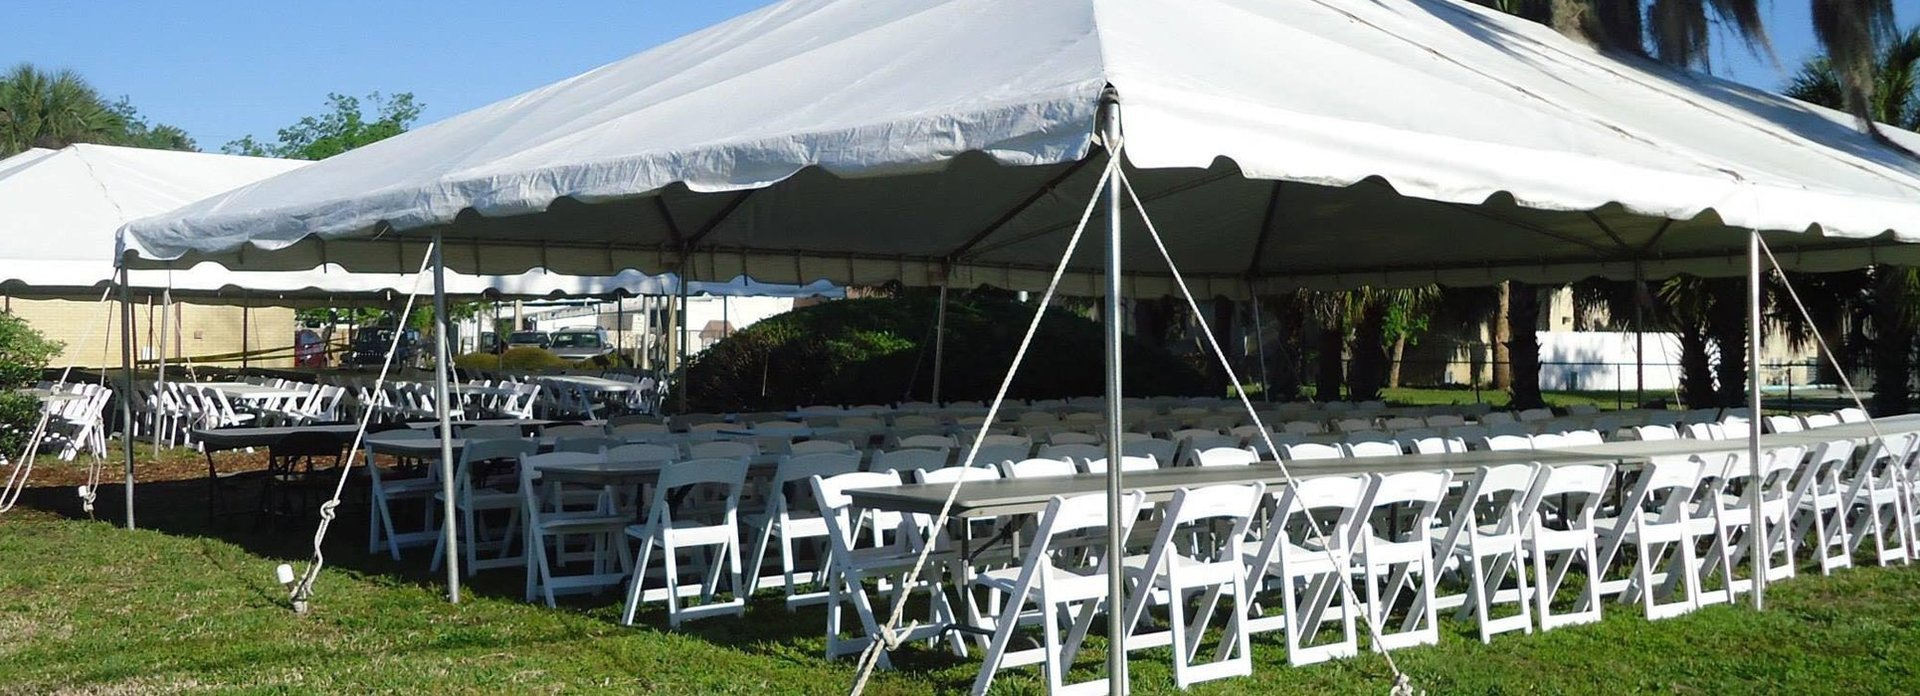 Tent And Chairs  Tent Rentals Tent Rentals